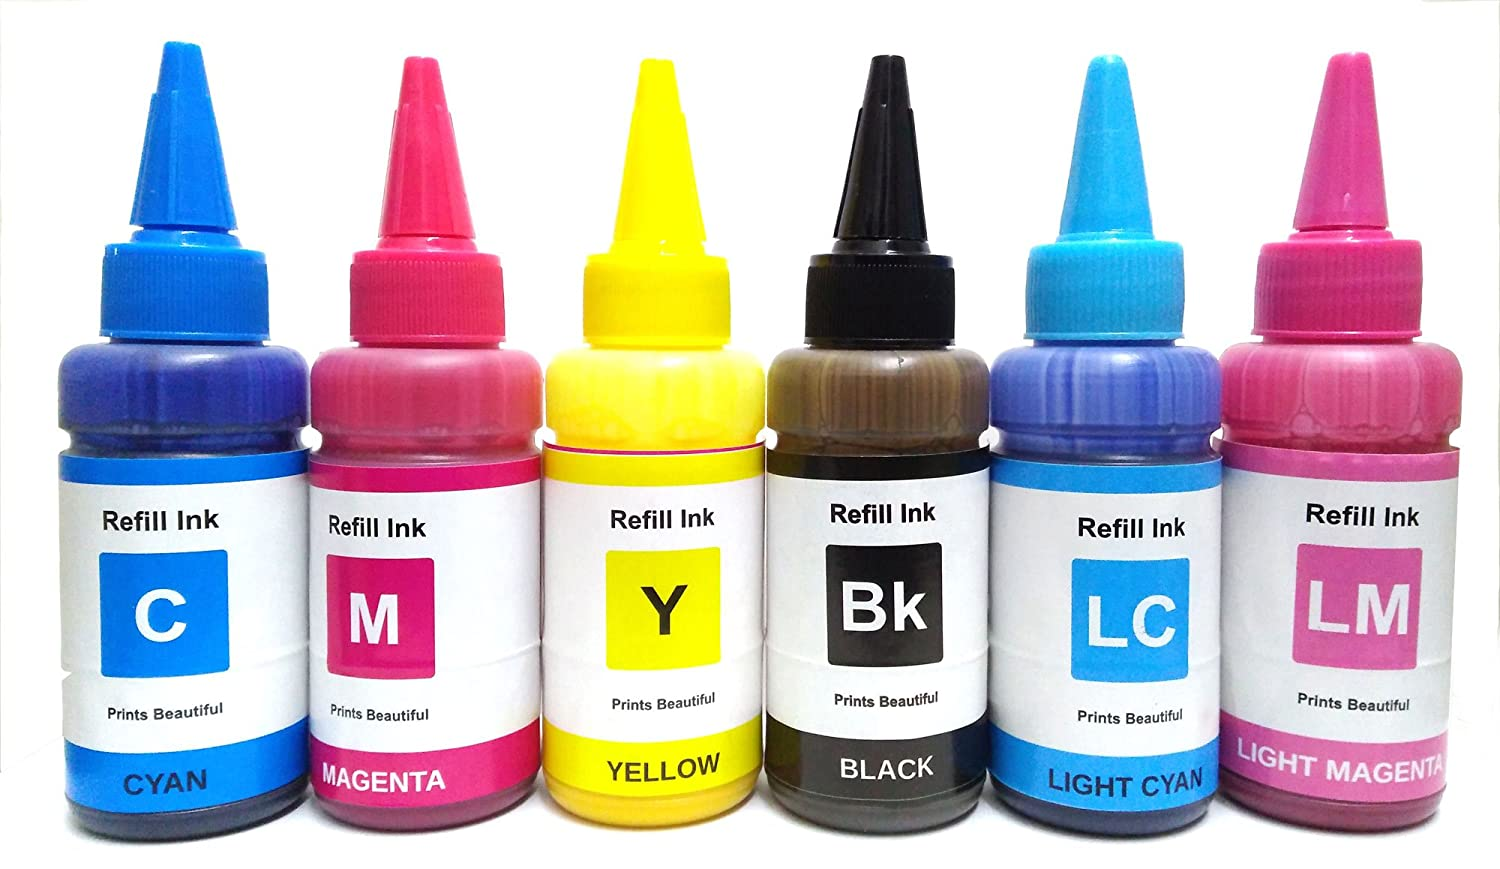 WHITE SKY Sublimation Ink for Epson Color Printers for T-Shirt Printing,  Mug Printing, Clothes, Plate, Mobile Cover Printings 6 x 75 ml (CMYK, LC,  LM)